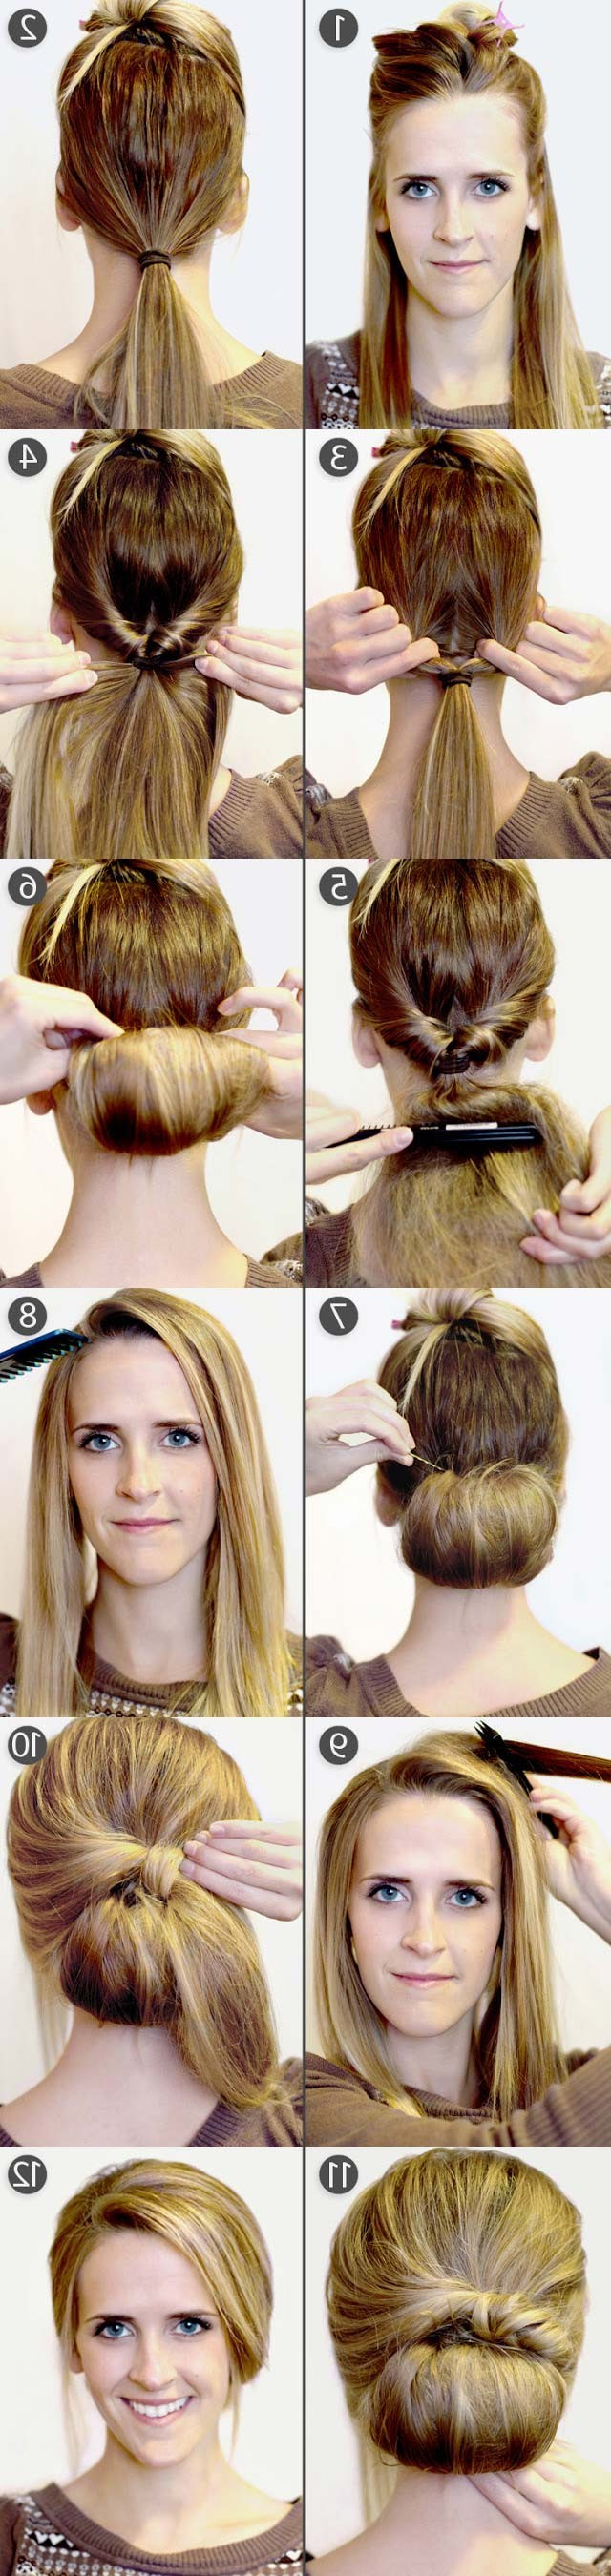 15 Cute Hairstyles: Step By Step Hairstyles For Long Hair – Popular Within Favorite Lovely Bouffant Updo Hairstyles For Long Hair (View 2 of 20)